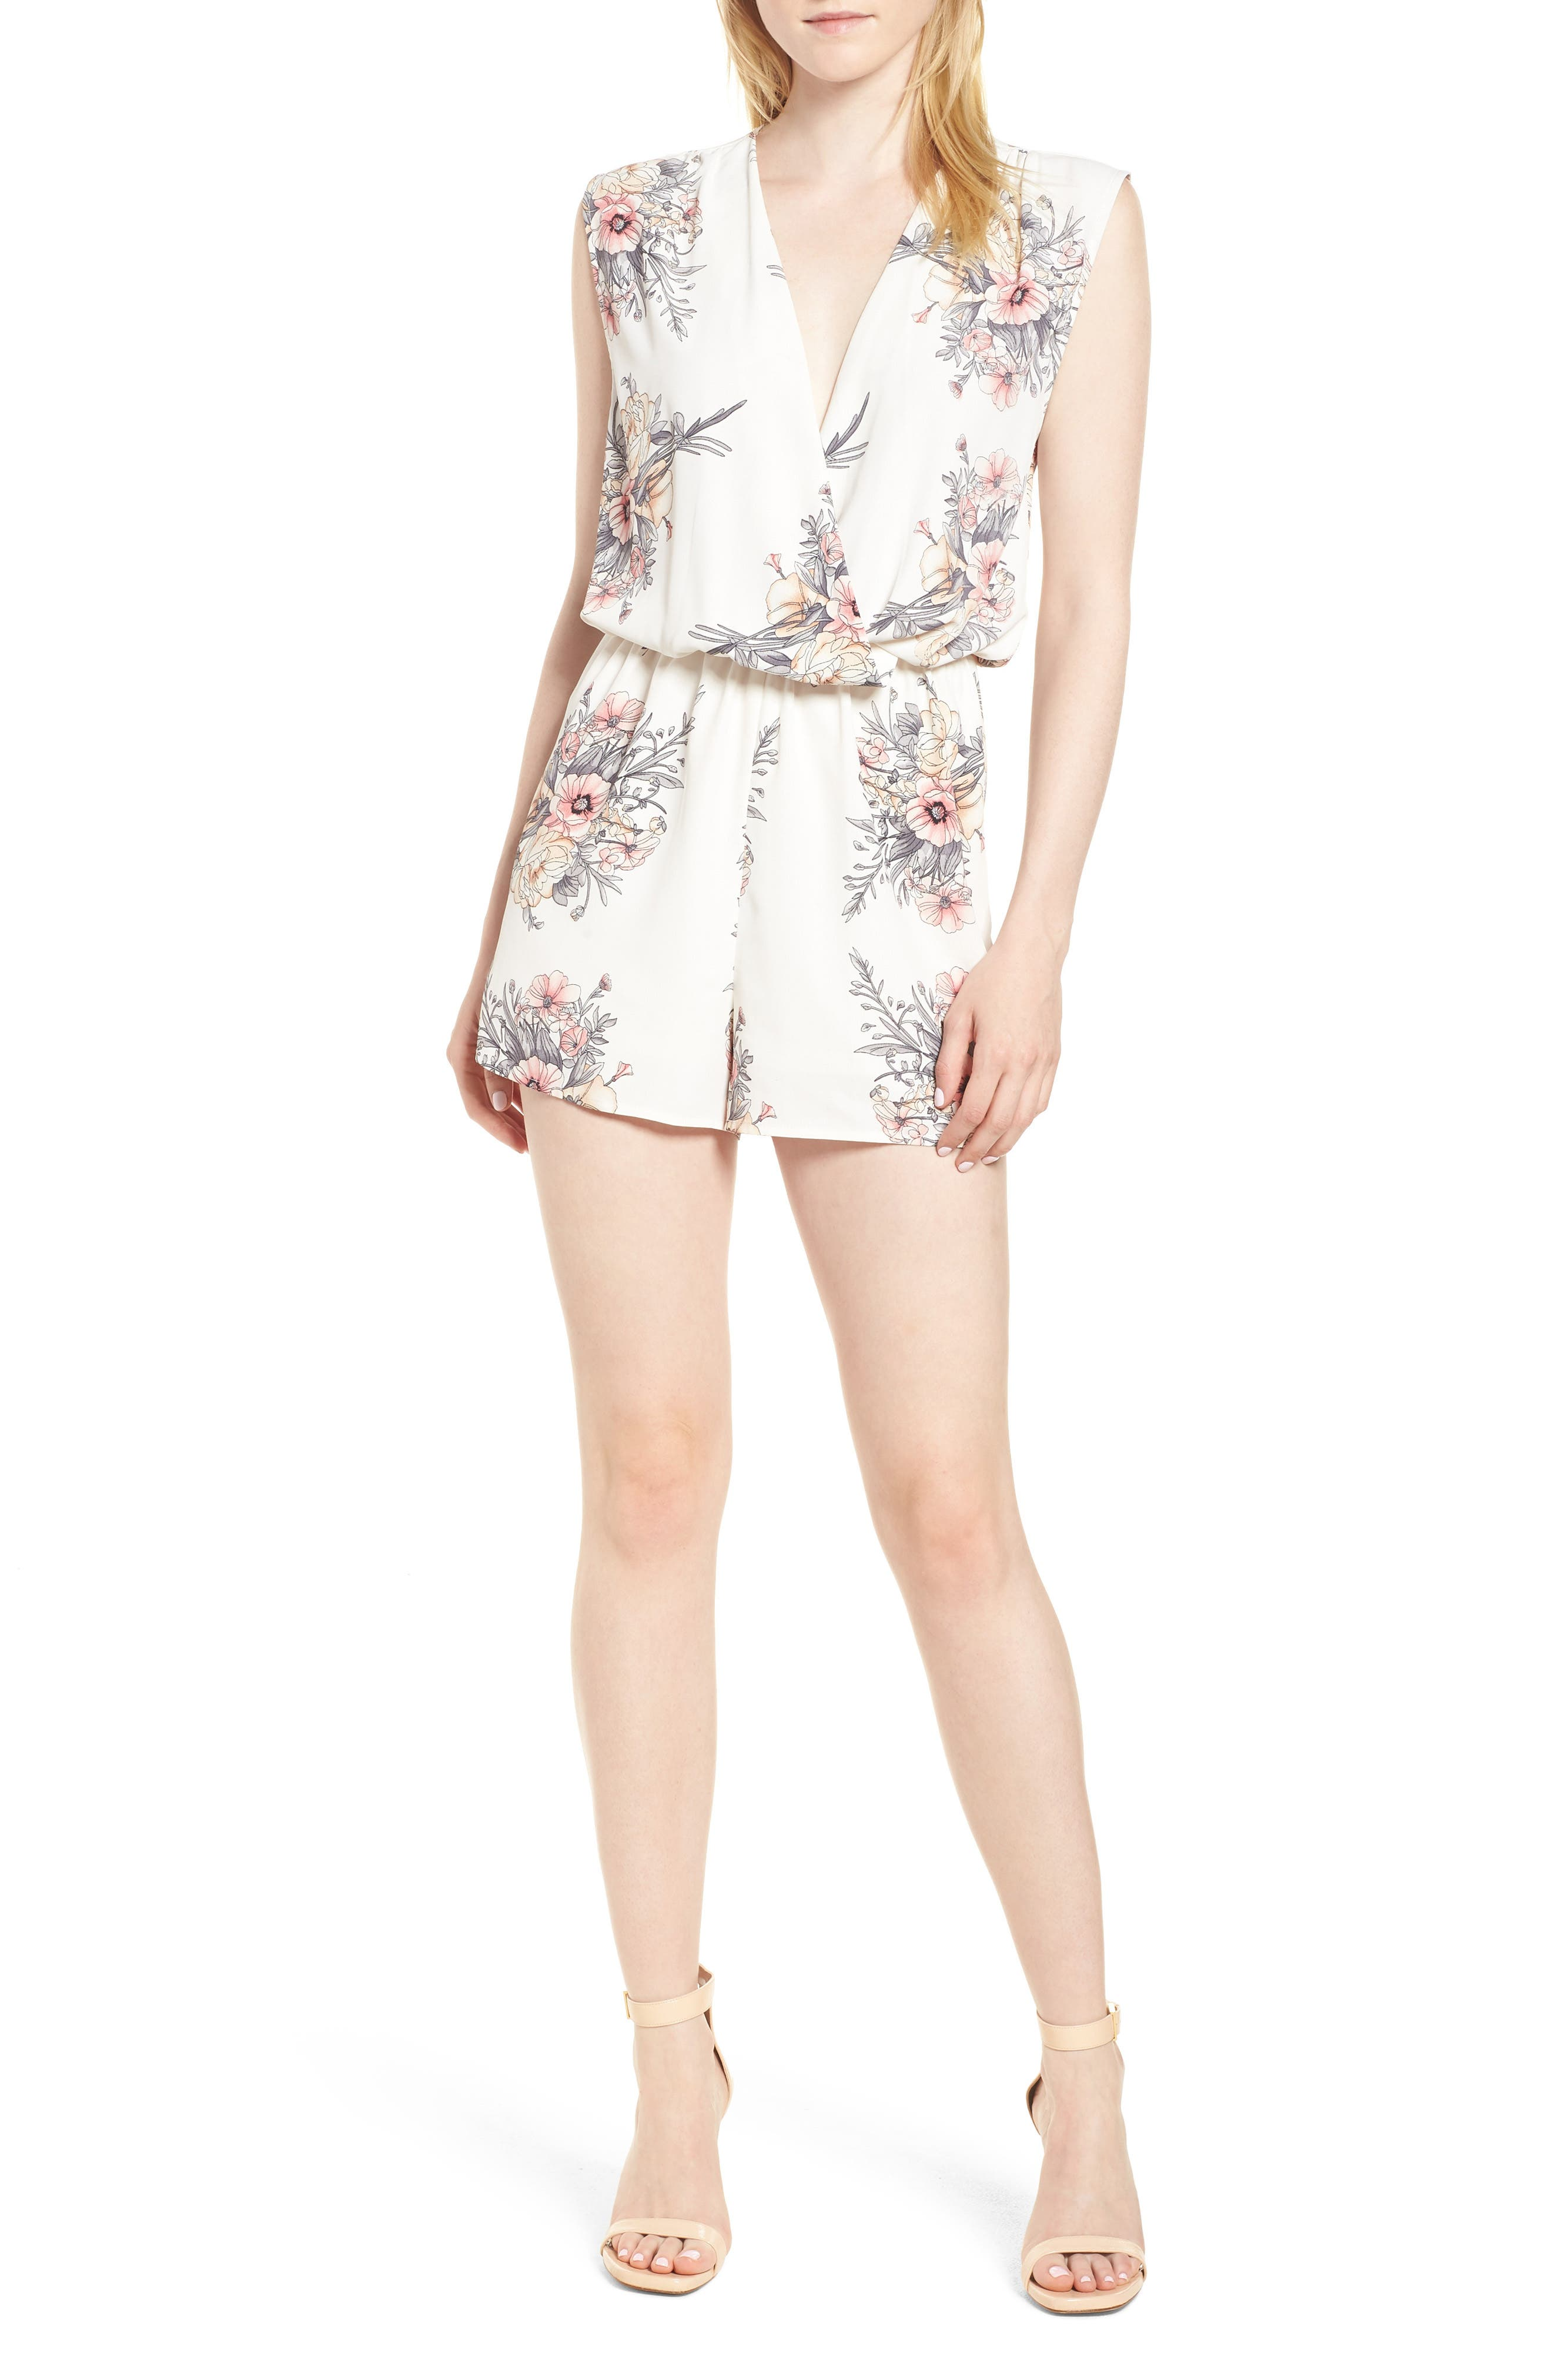 Bishop + Young Summer of Love Romper,                         Main,                         color, Summer Of Love Print